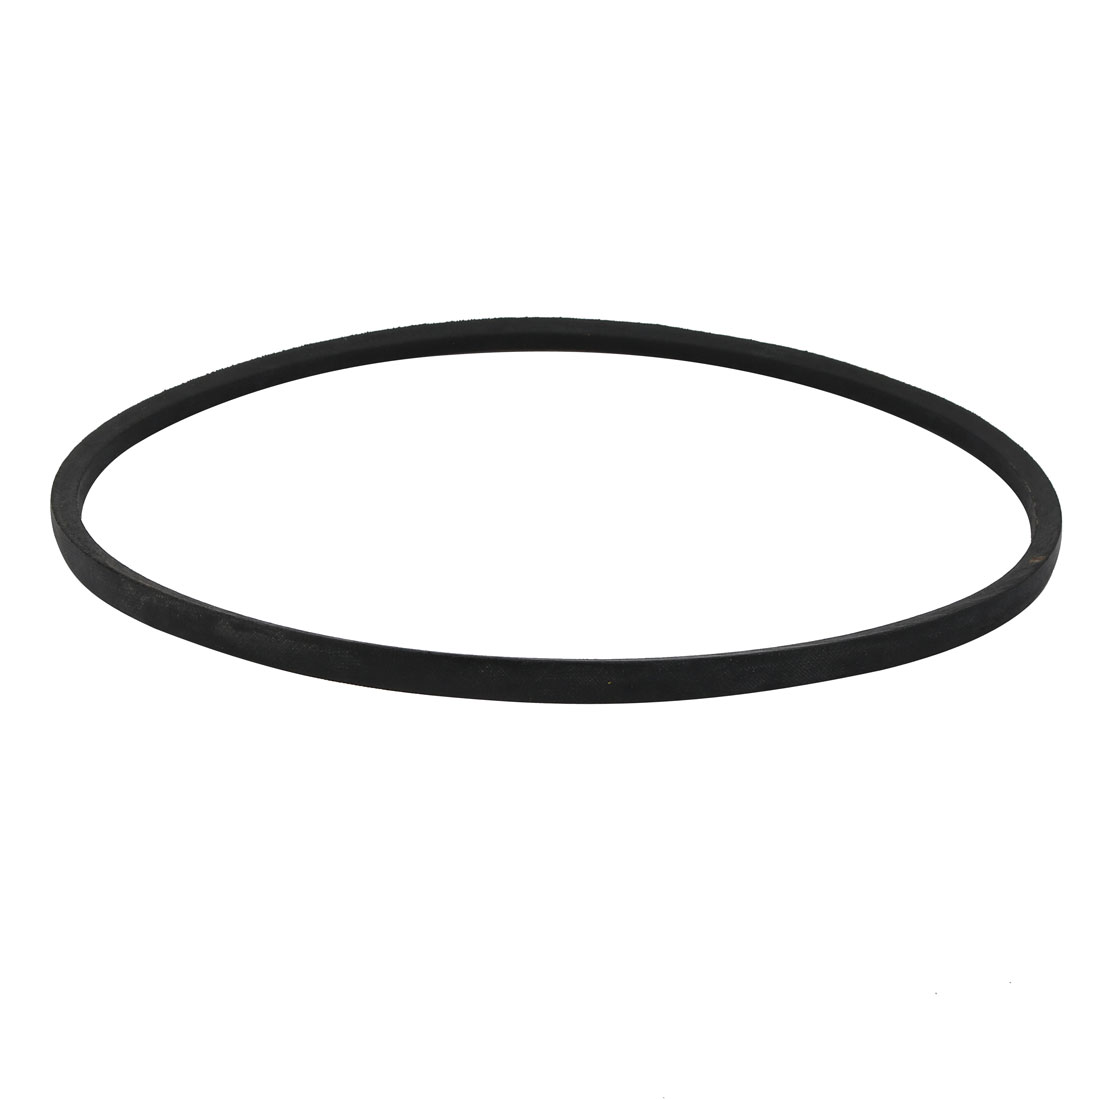 A850 13mm Width 8mm Thickness Rubber Transmission Drive V-Belt